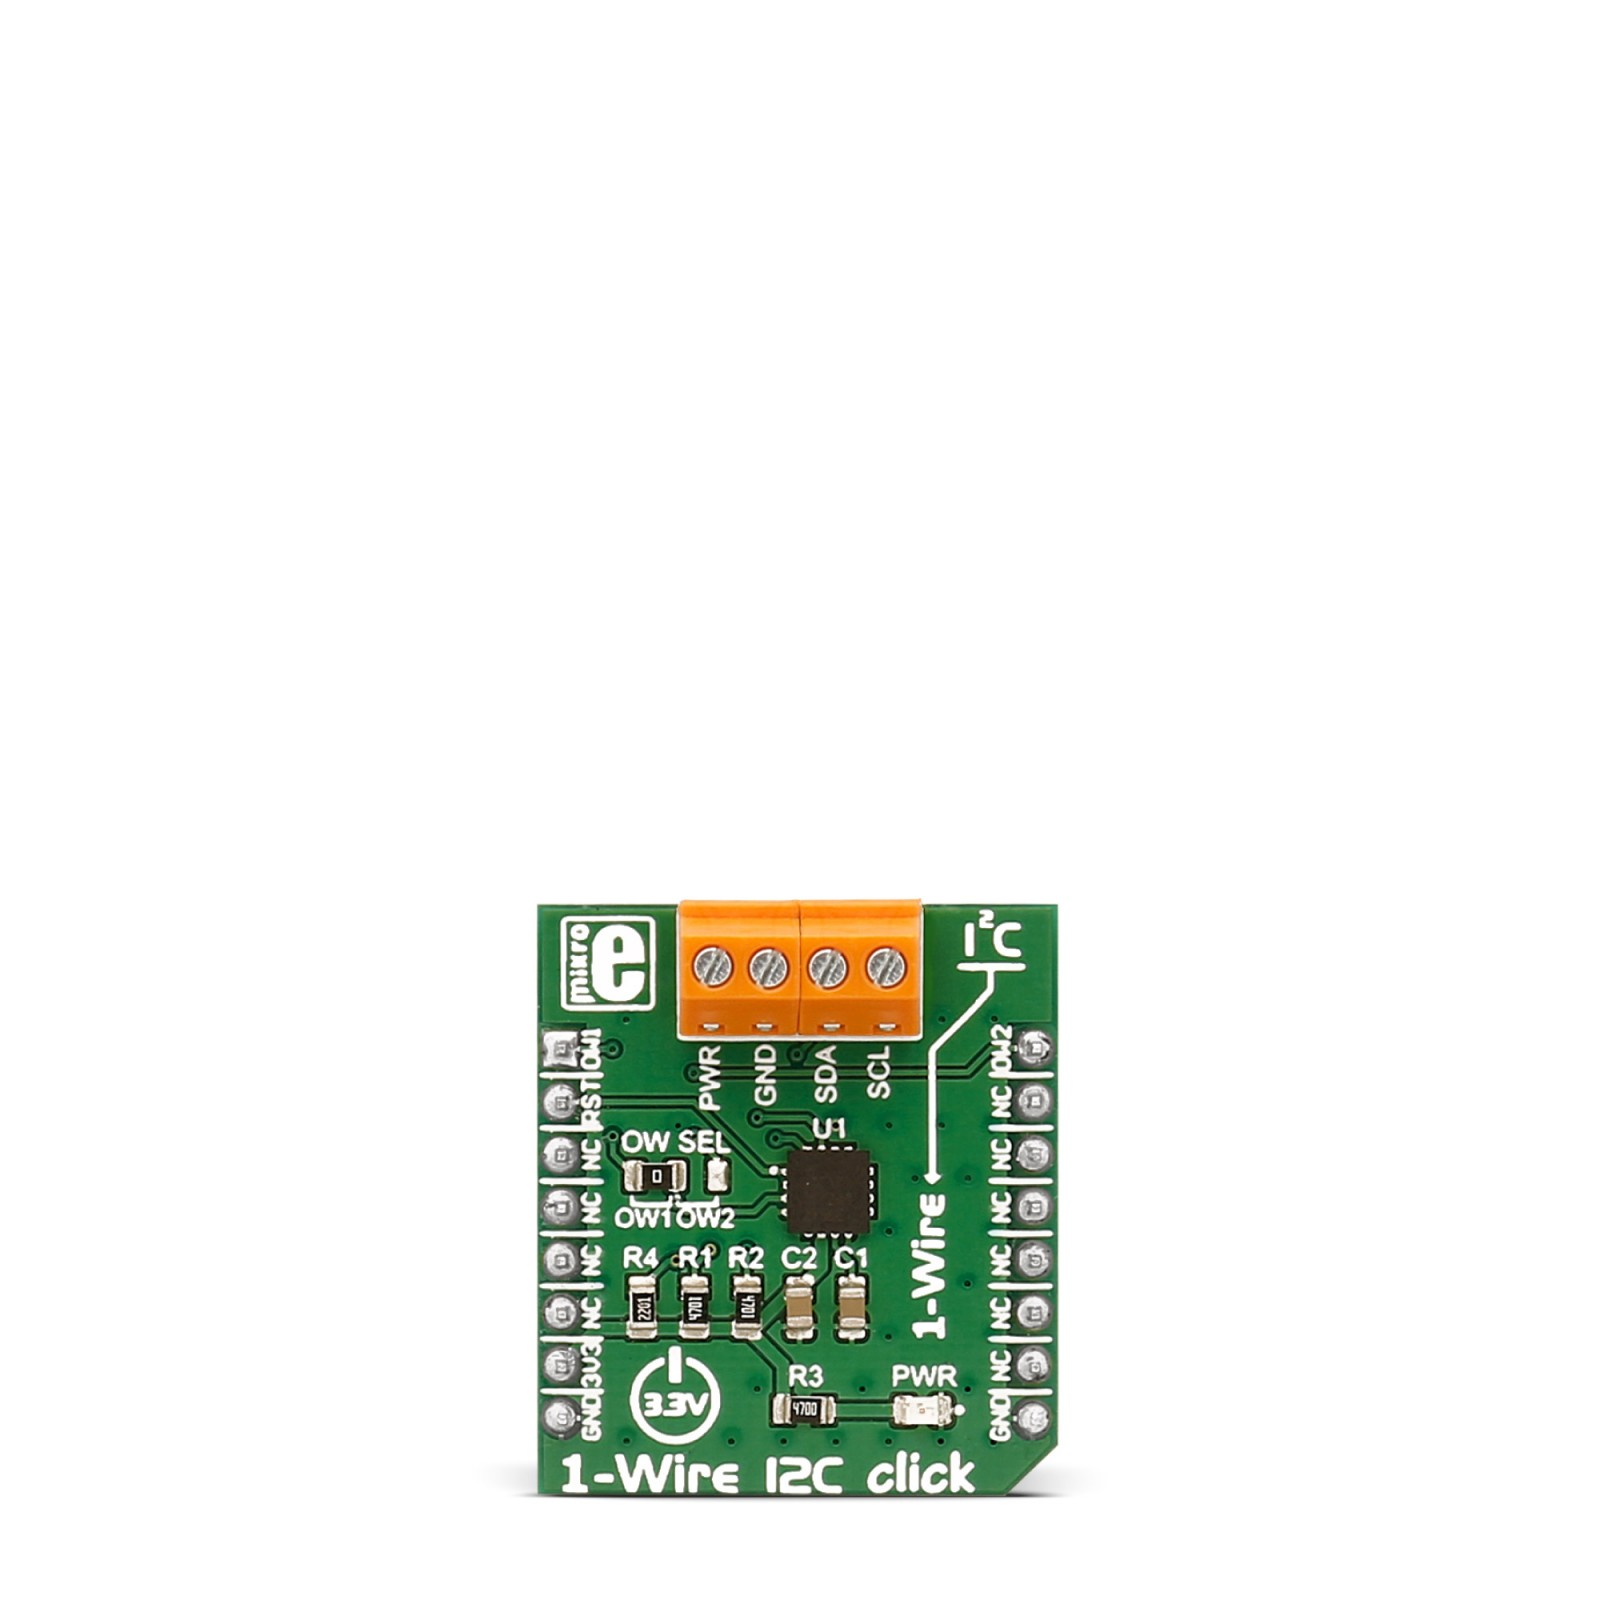 1-Wire I2C click converts I2C communication to 1-wire